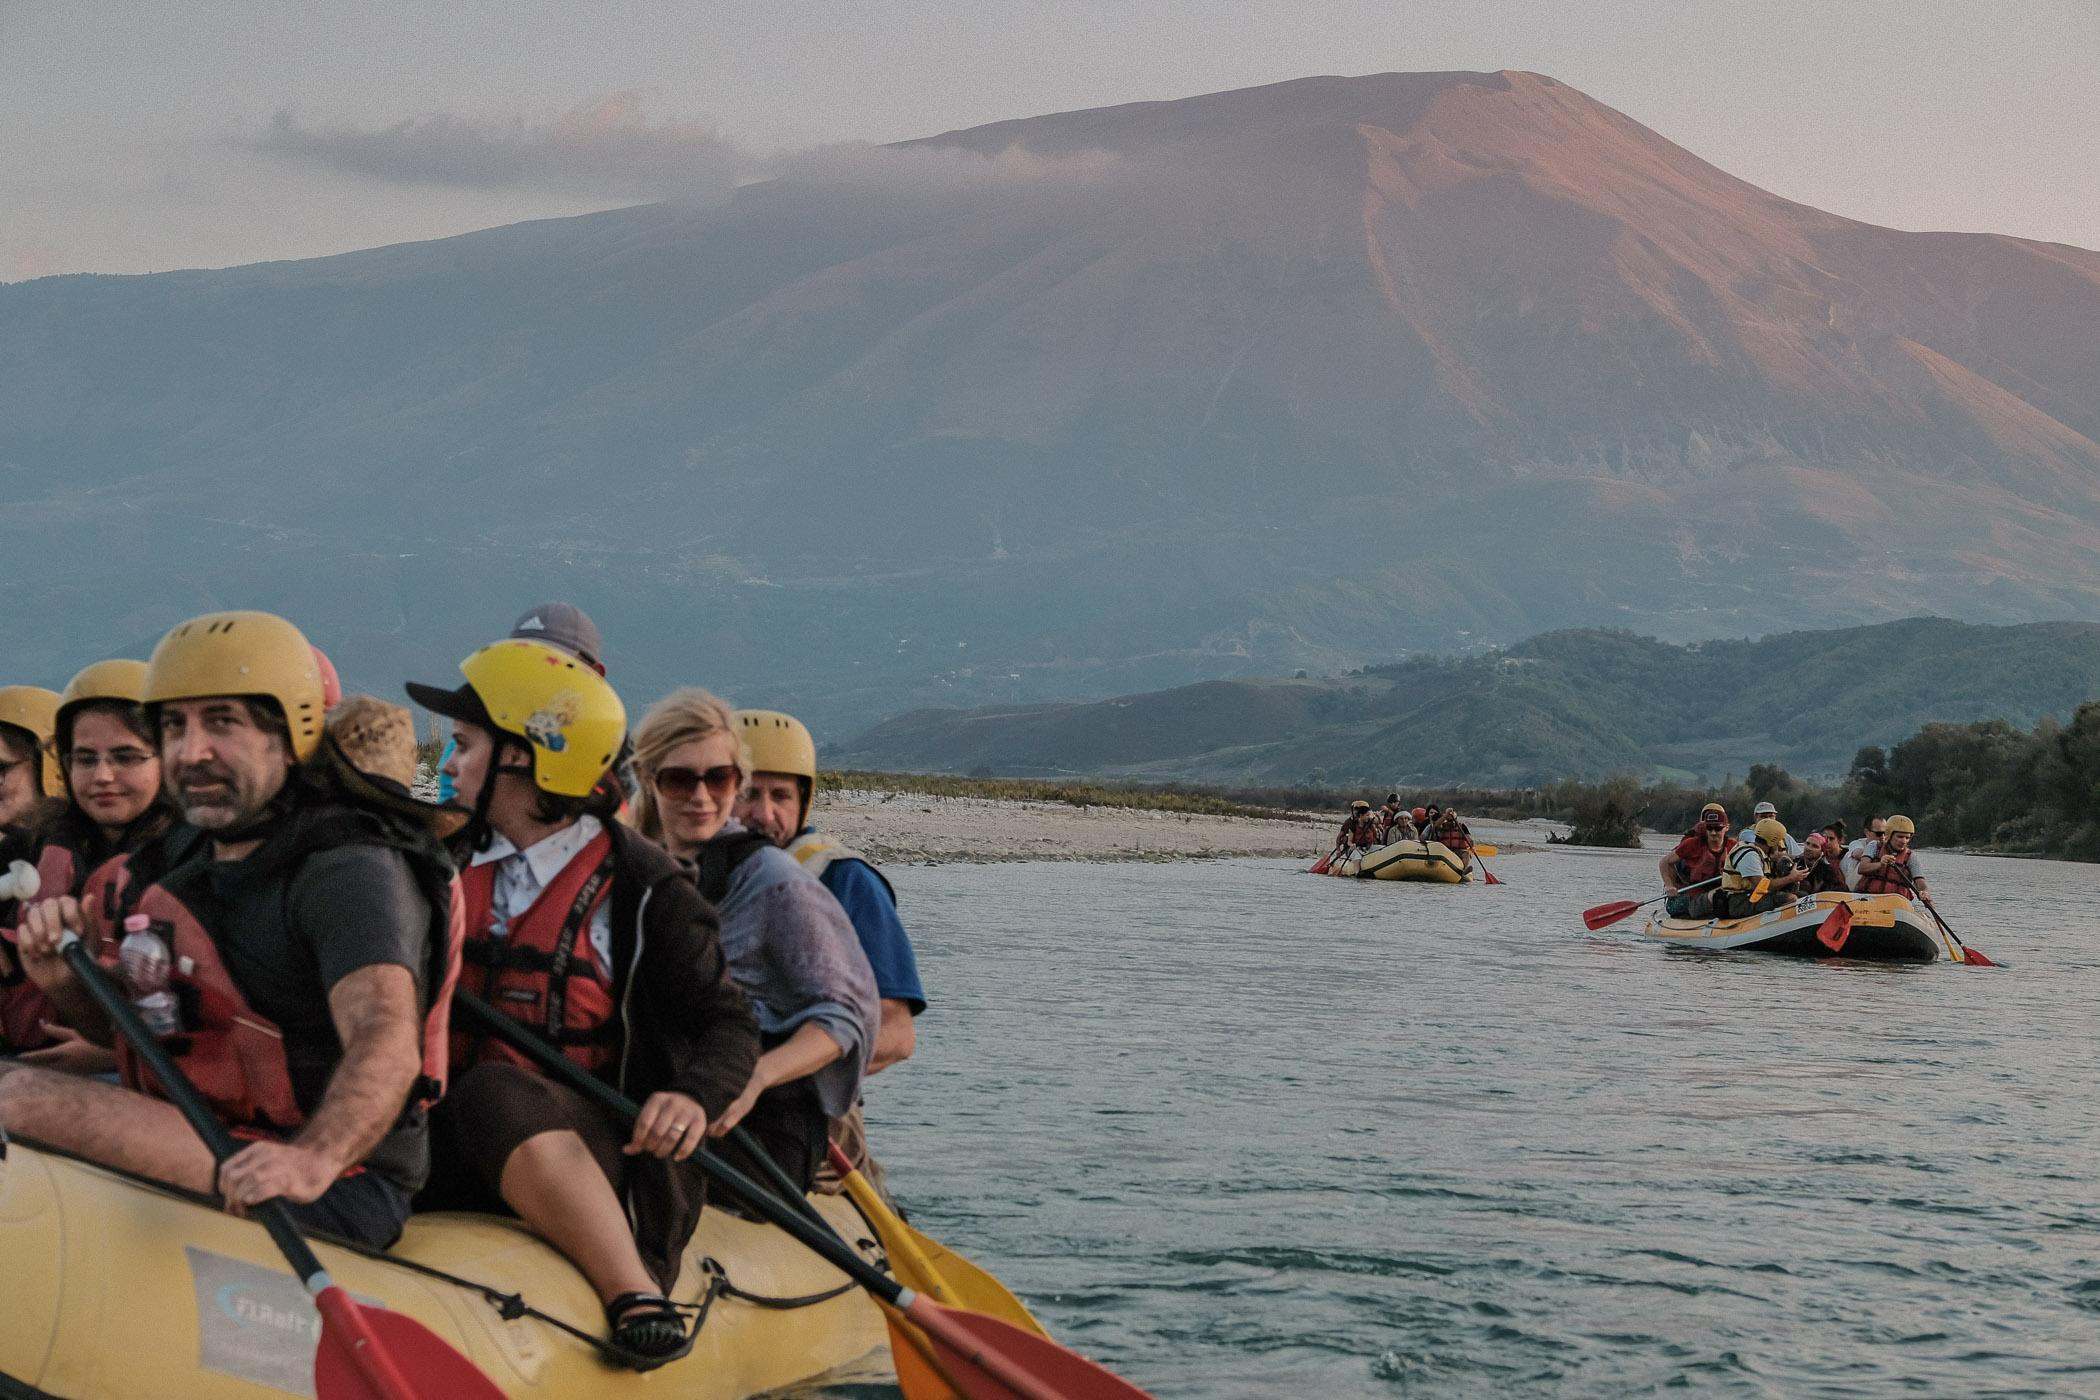 A group of scientists and activists raft down the Vjosa river, in between the proposed sites of two contested large scale hydropower dams near the village of Kuta, Albania.